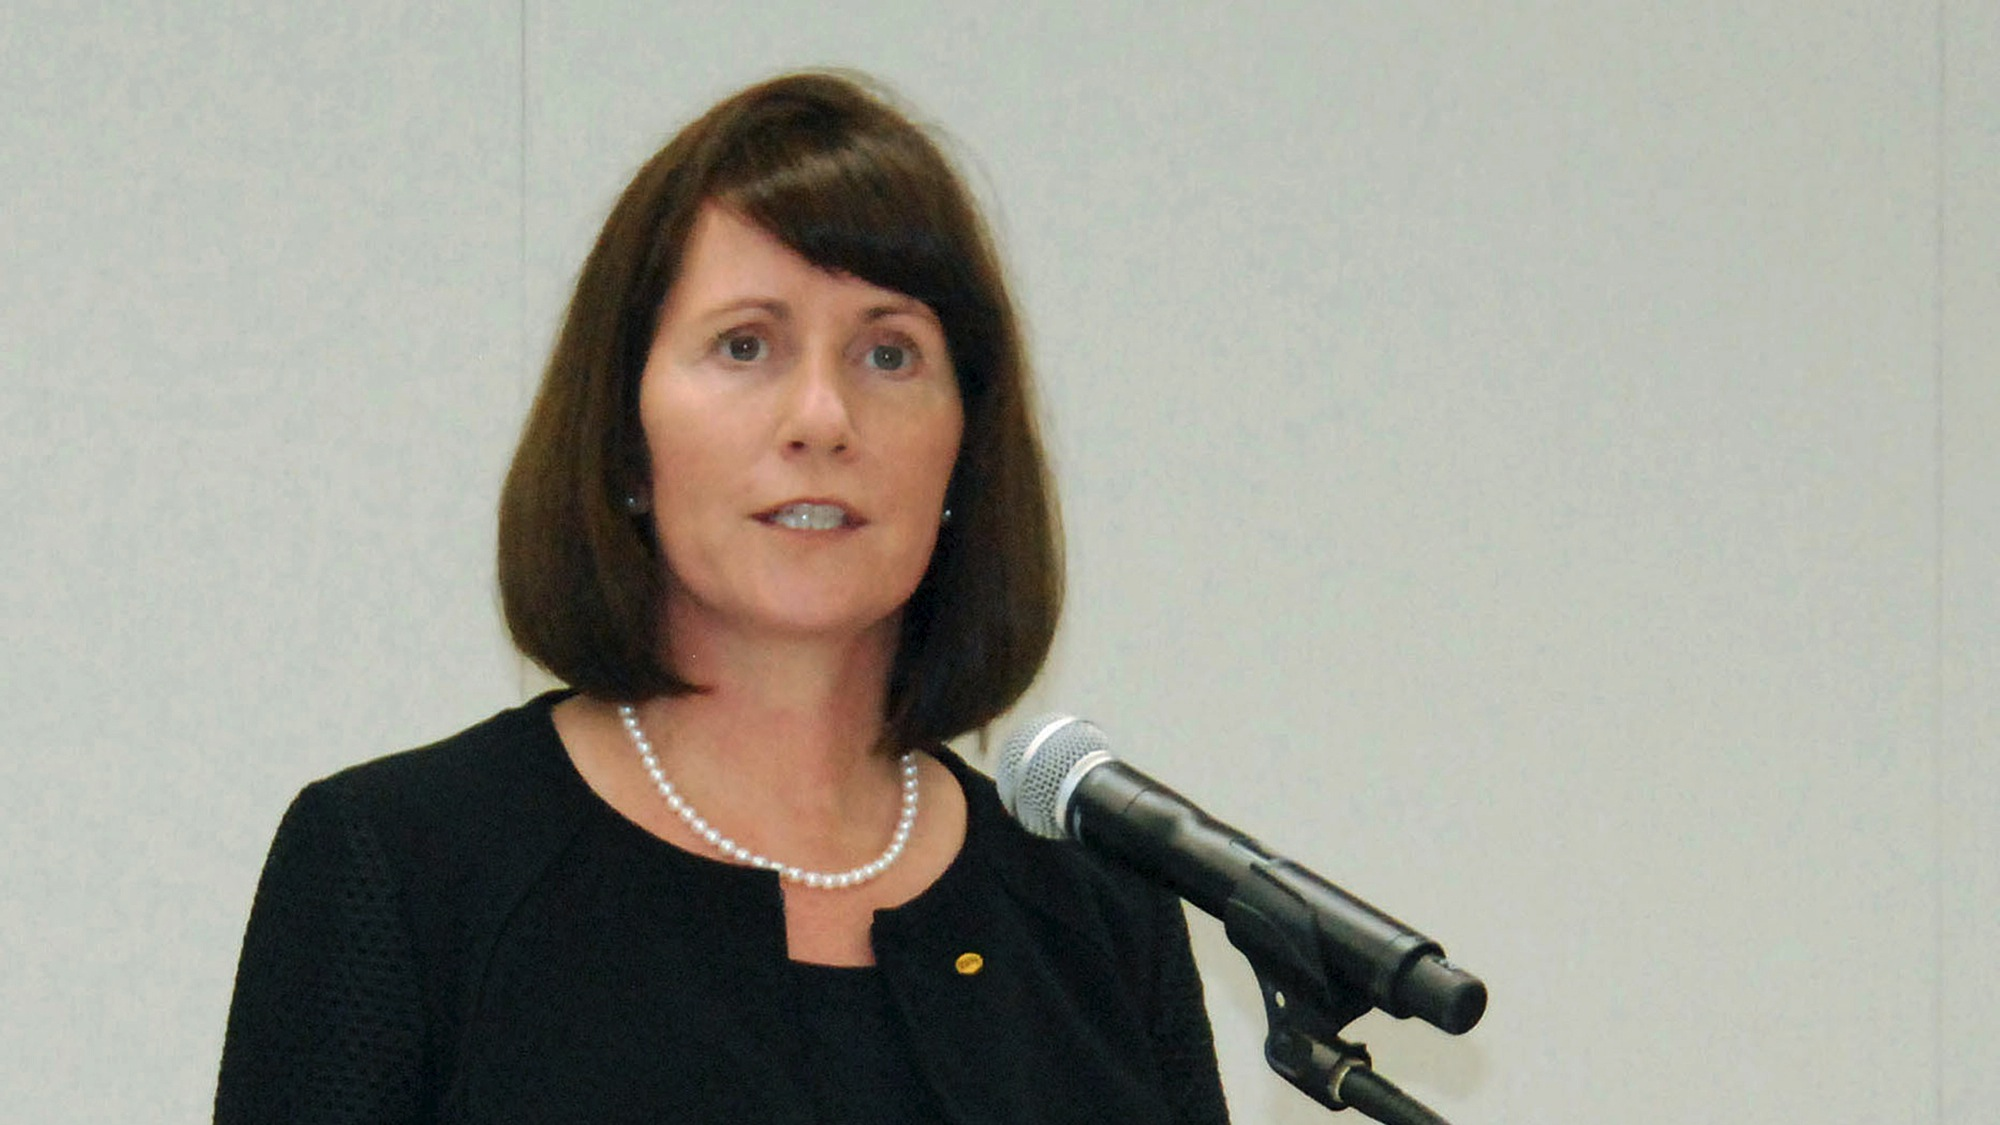 Toyota Motor Corp's Managing Officer and Chief Communications Officer Julie Hamp speaks to the media during a news conference in Nagoya, central Japan, in this file photo taken by Kyodo June 17, 2015 and released by Kyodo on June 18, 2015. Toyota Motor Corp said on Wednesday that Managing Officer Julie Hamp was stepping down, following her arrest last month on suspicion of illegally importing the painkiller oxycodone into Japan. Mandatory credit REUTERS/Kyodo/Files